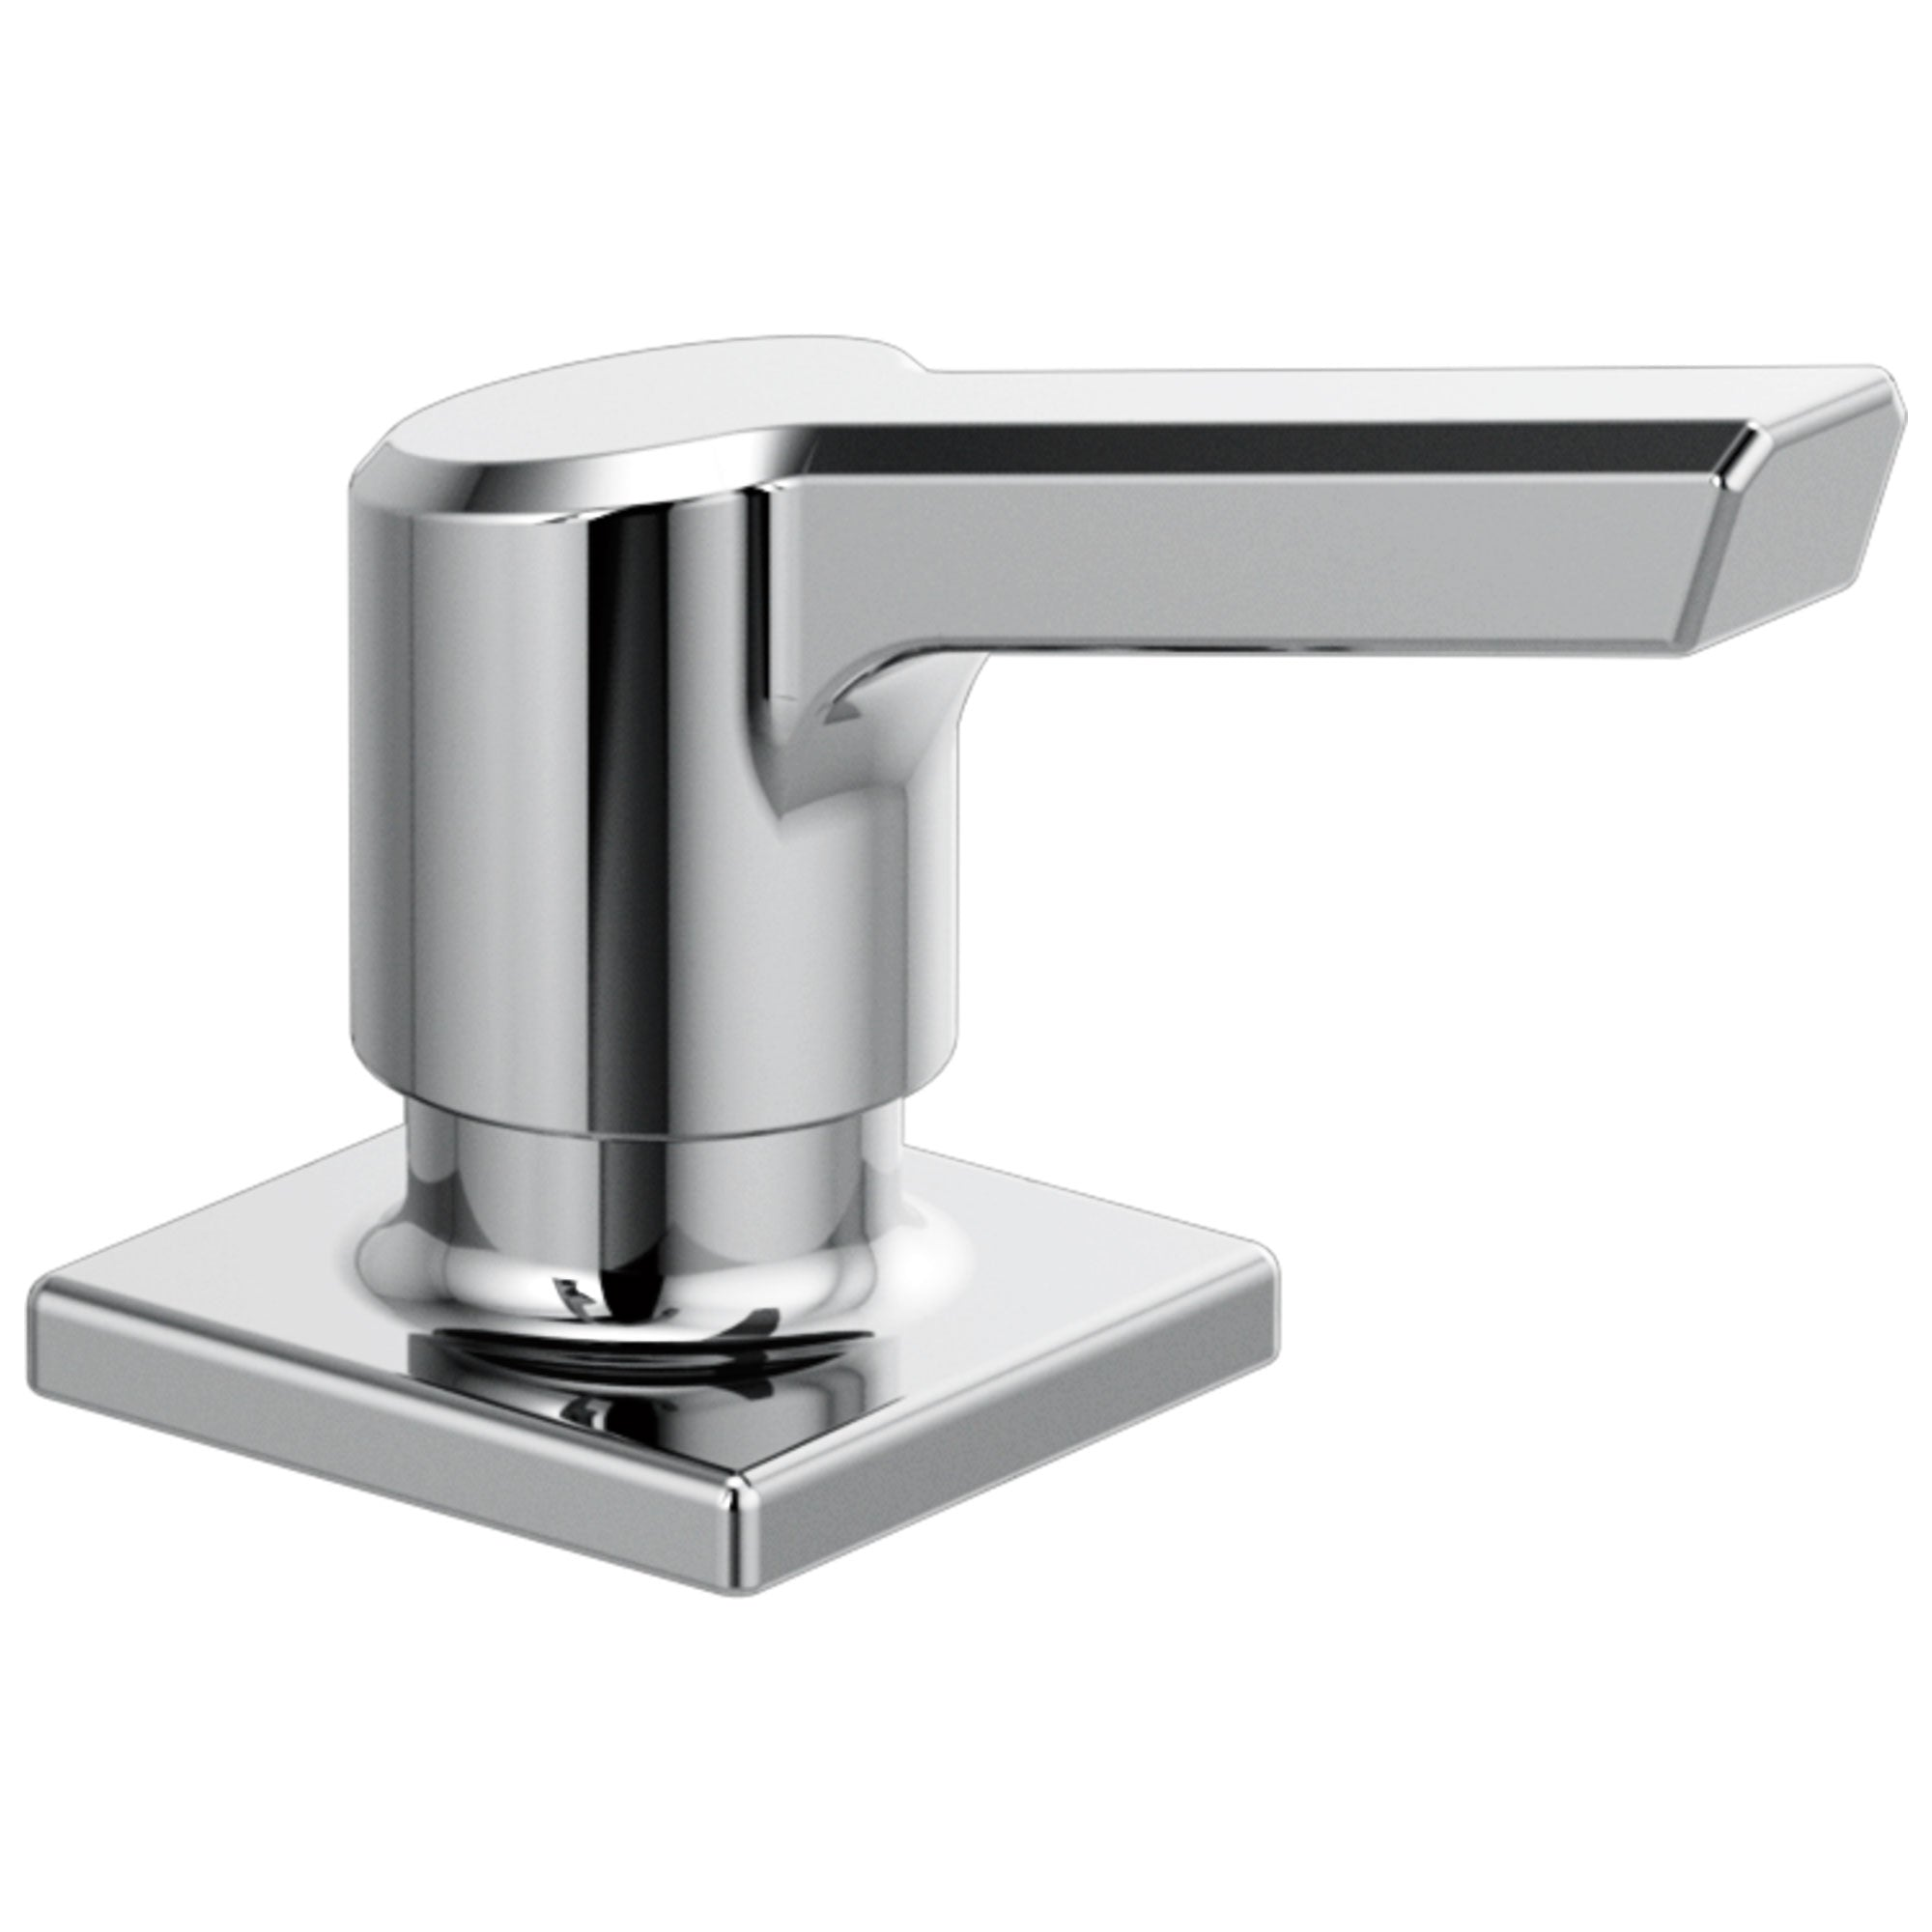 Delta Pivotal Chrome Finish Soap / Lotion Dispenser DRP91950